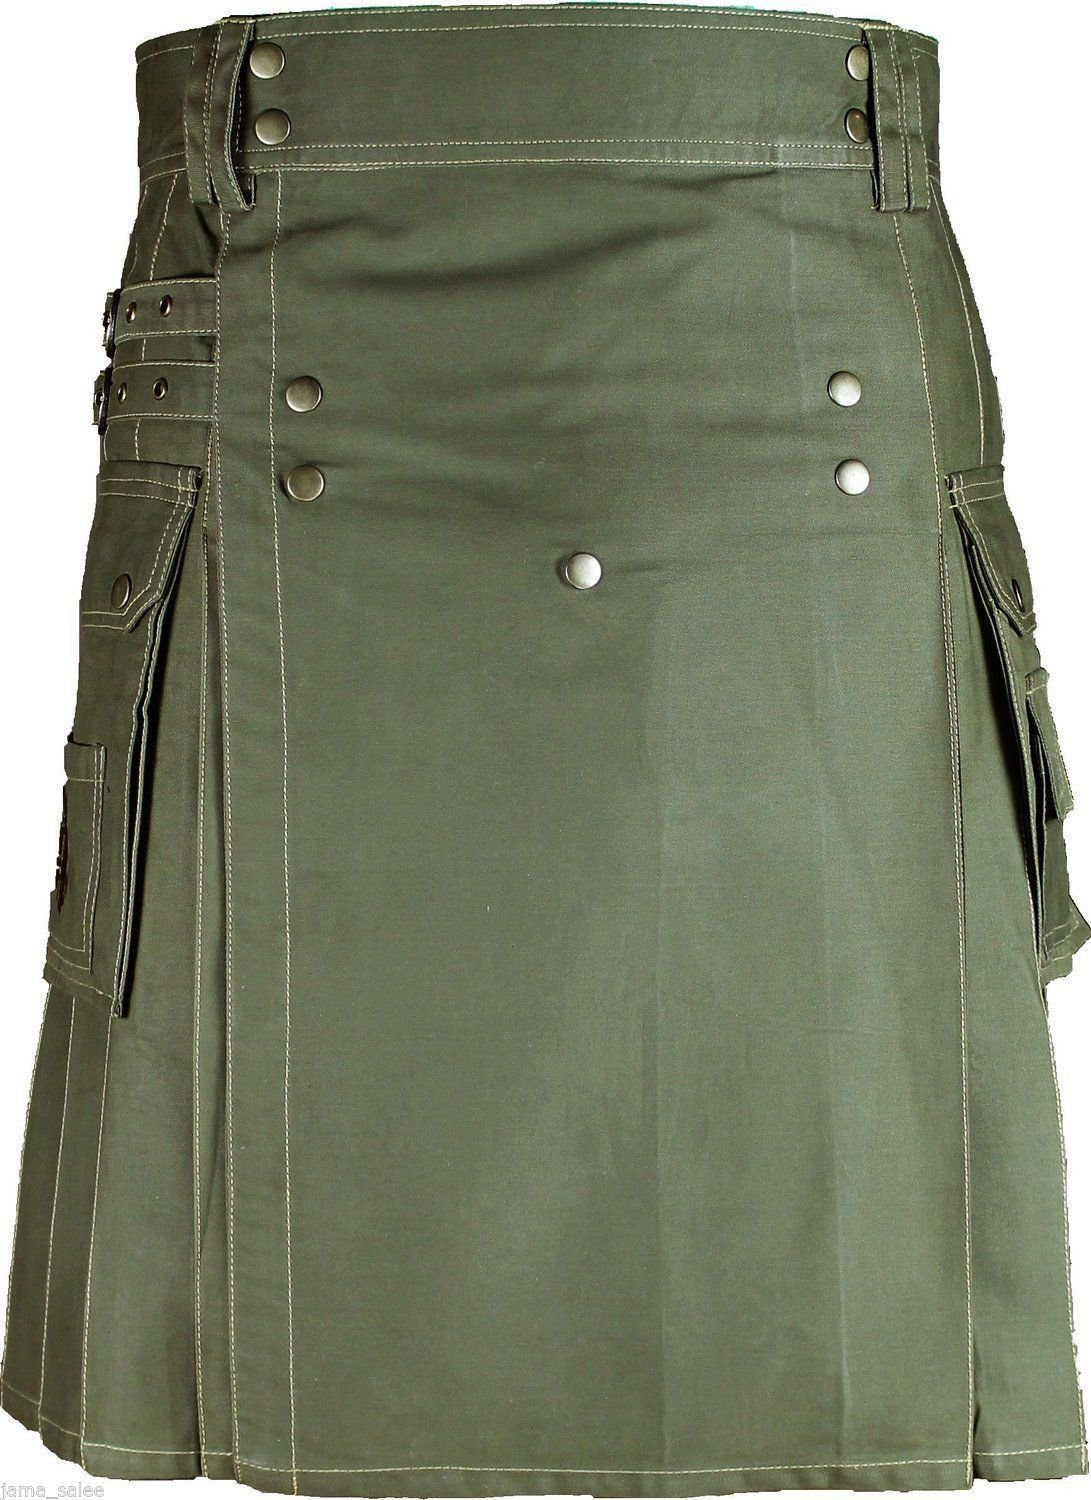 New 32 Size Modern Olive Green Kilt Traditional Scottish Utility Cotton Kilt